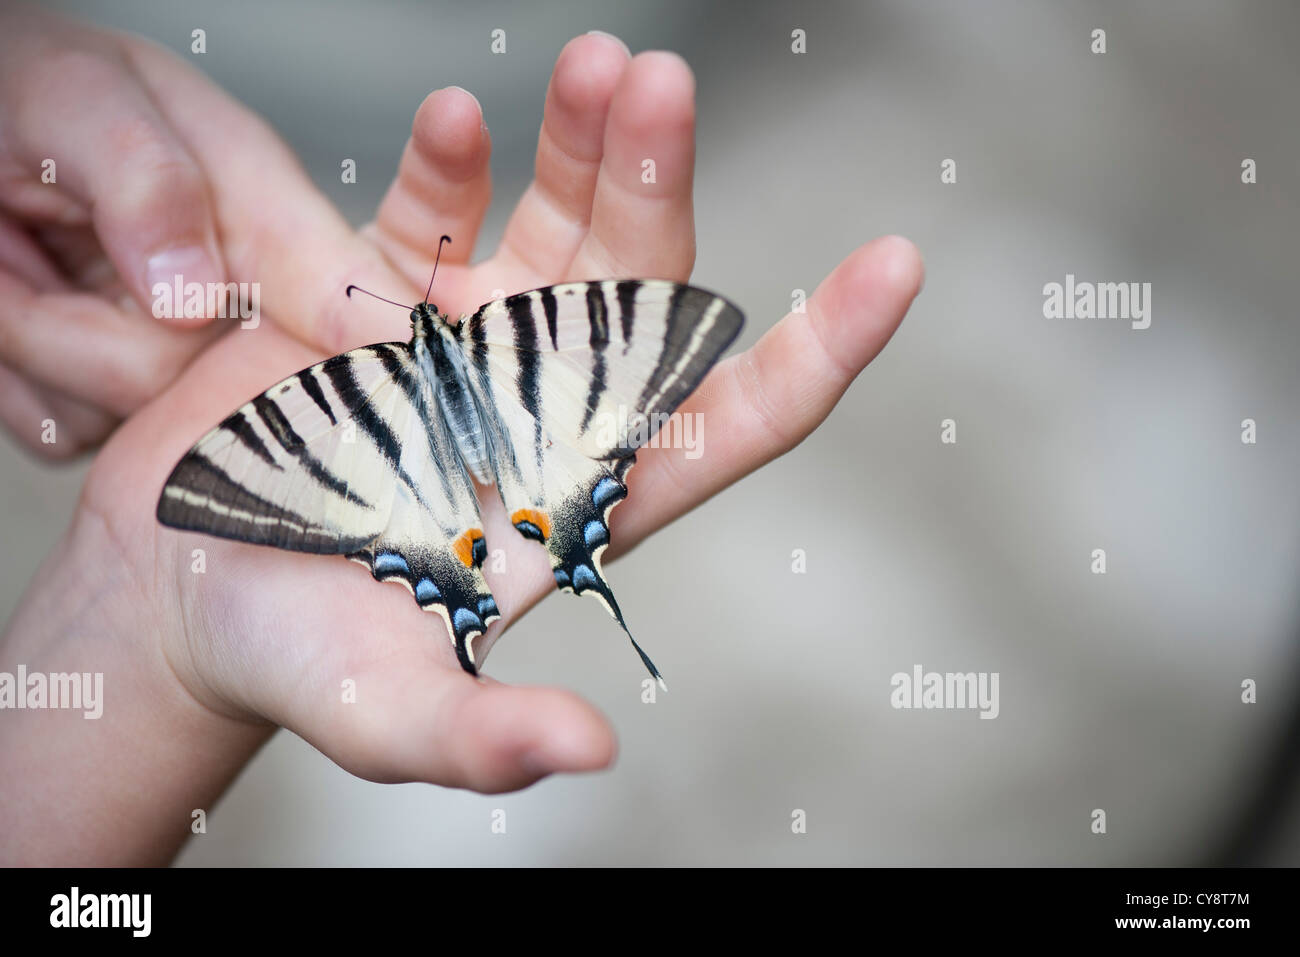 Child holding zebra swallowtail butterfly in palm, cropped - Stock Image